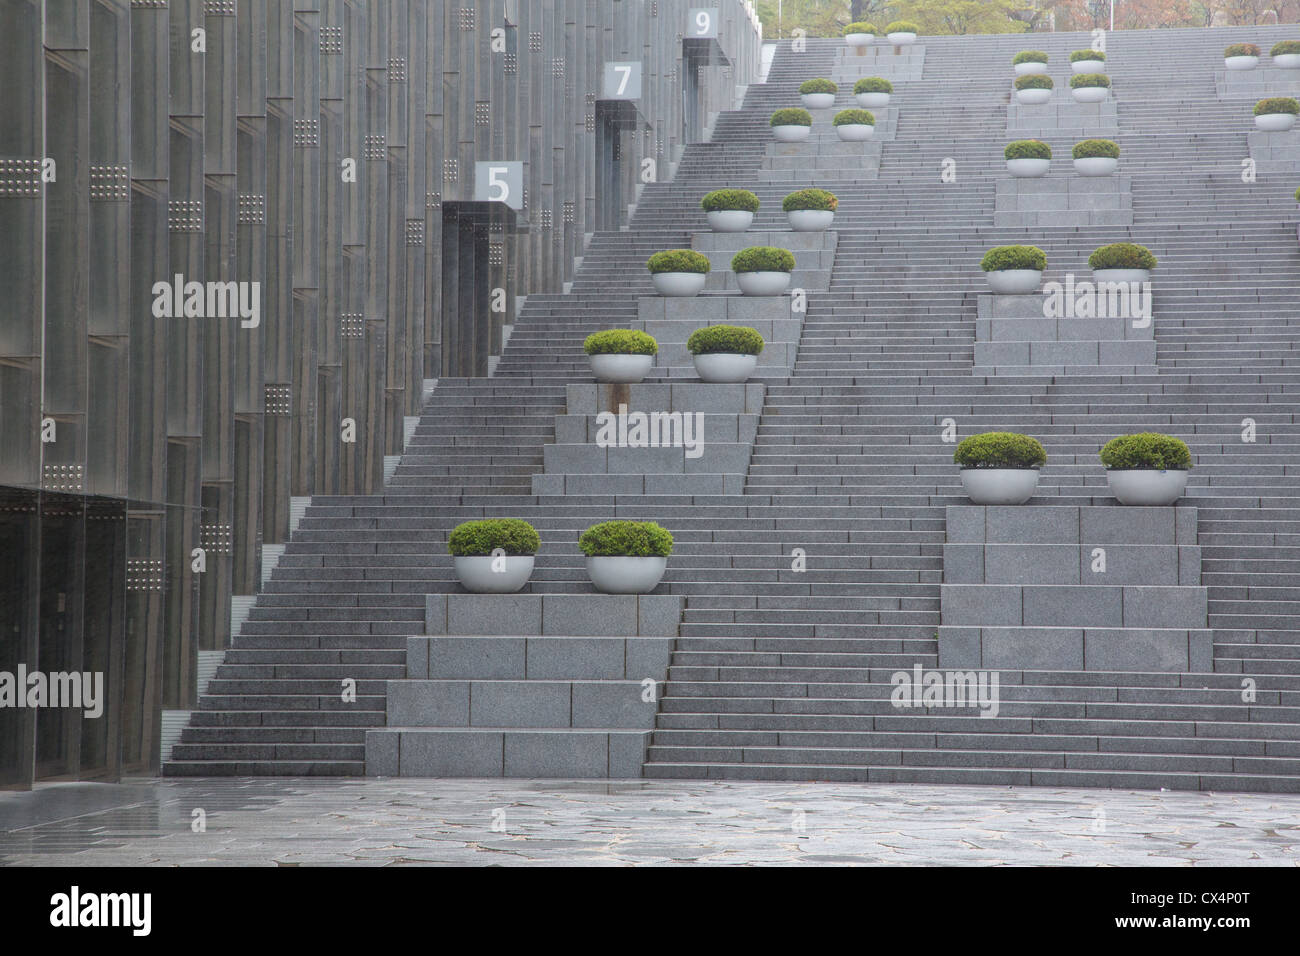 Concrete and stone staircase at the Ewha women's university in Seoul, South Korea - Stock Image